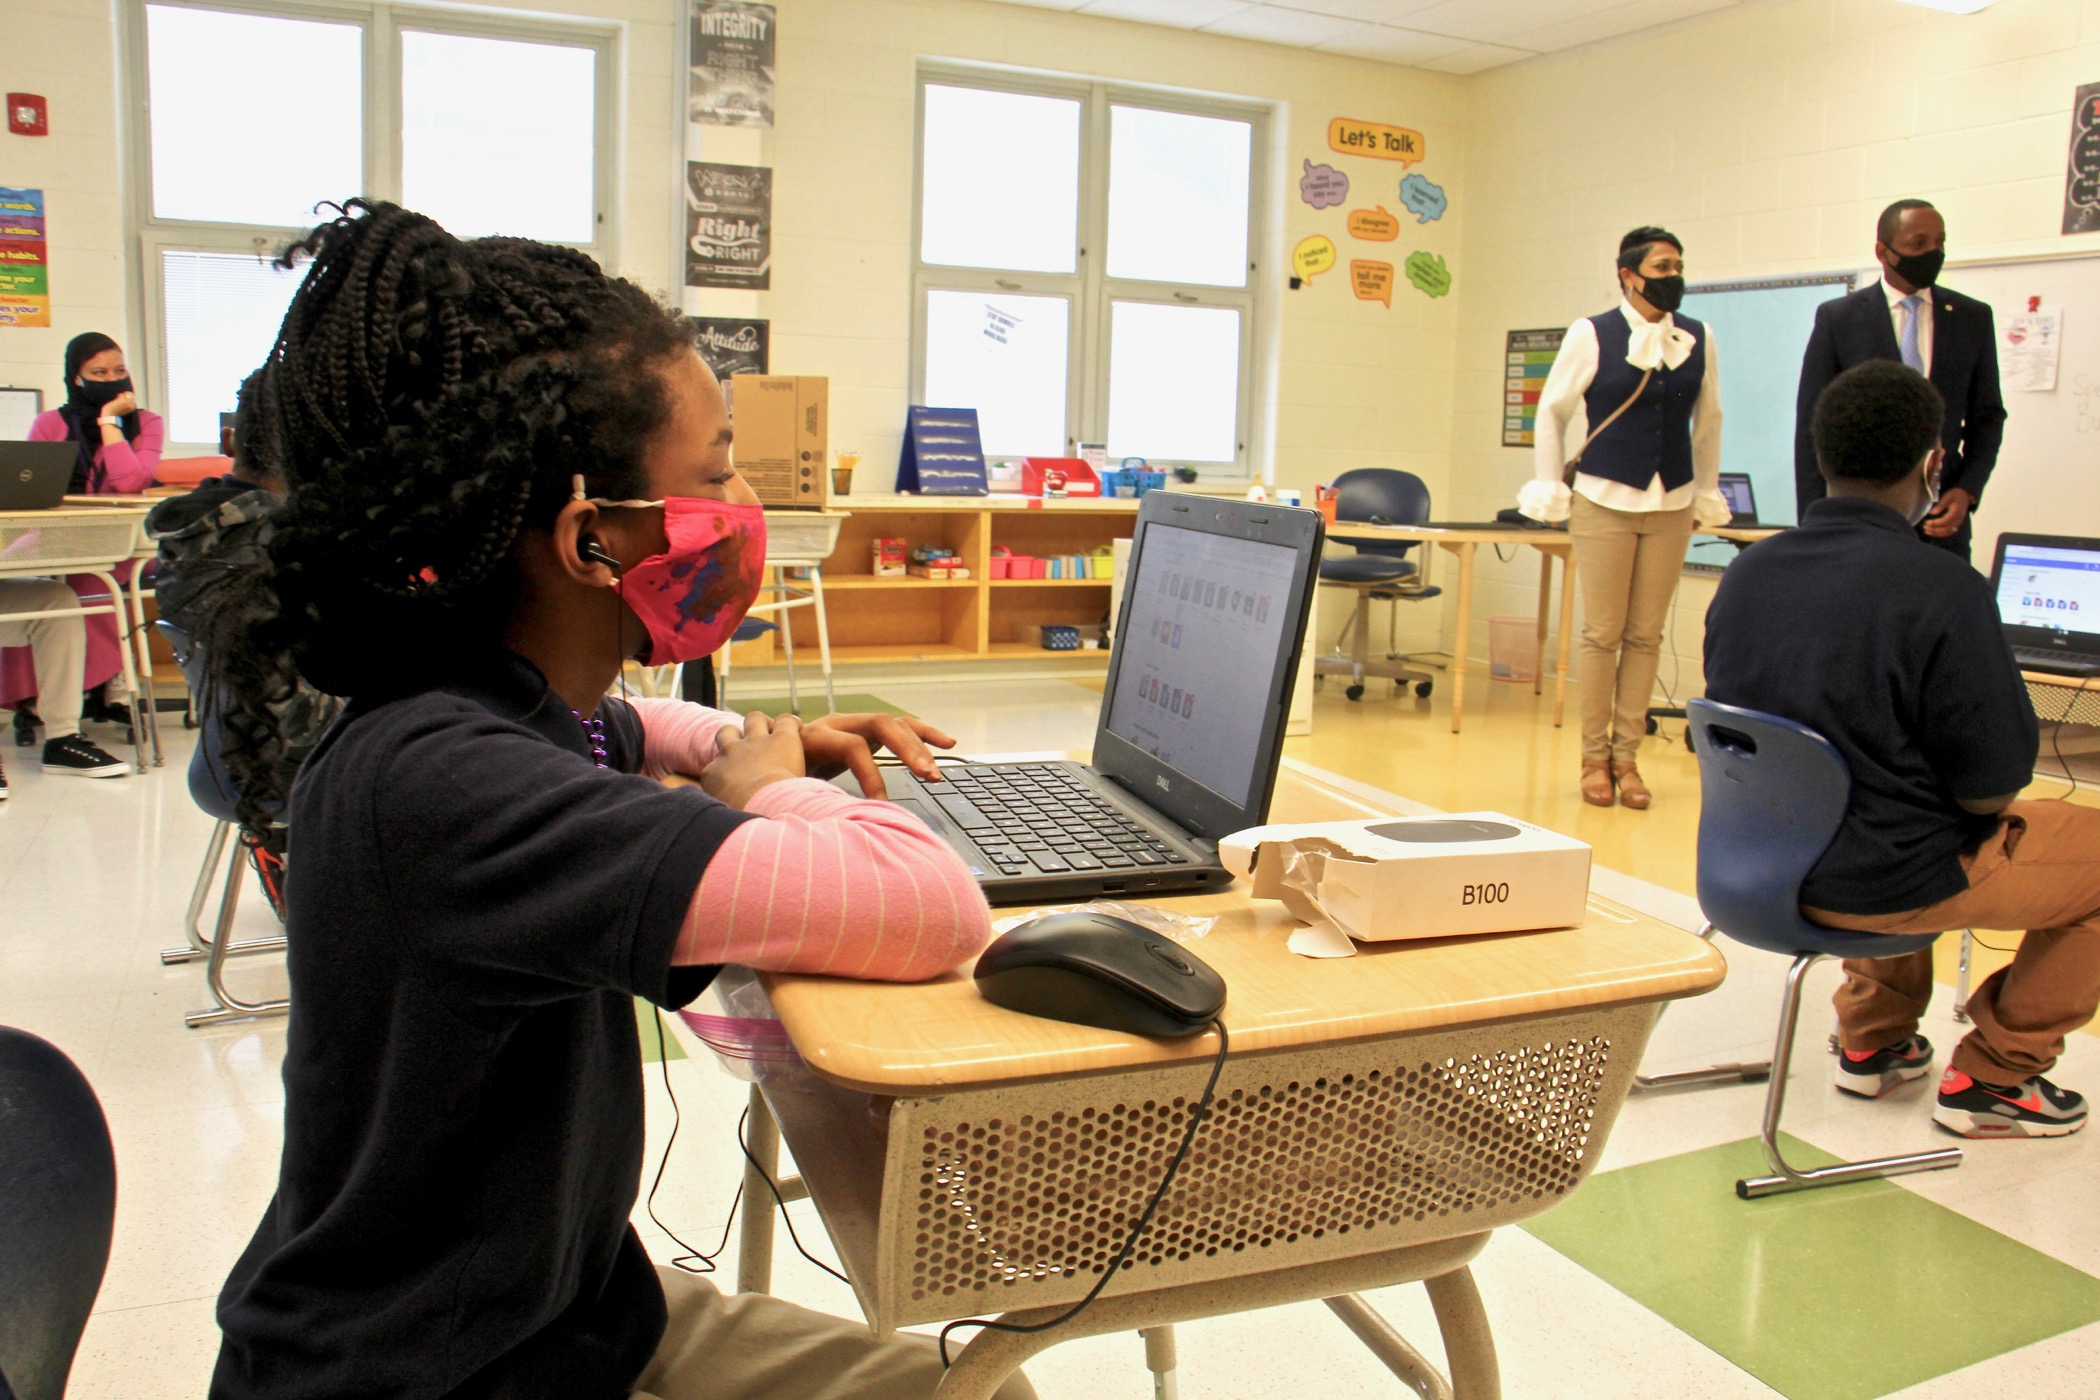 Students settle in at their desks